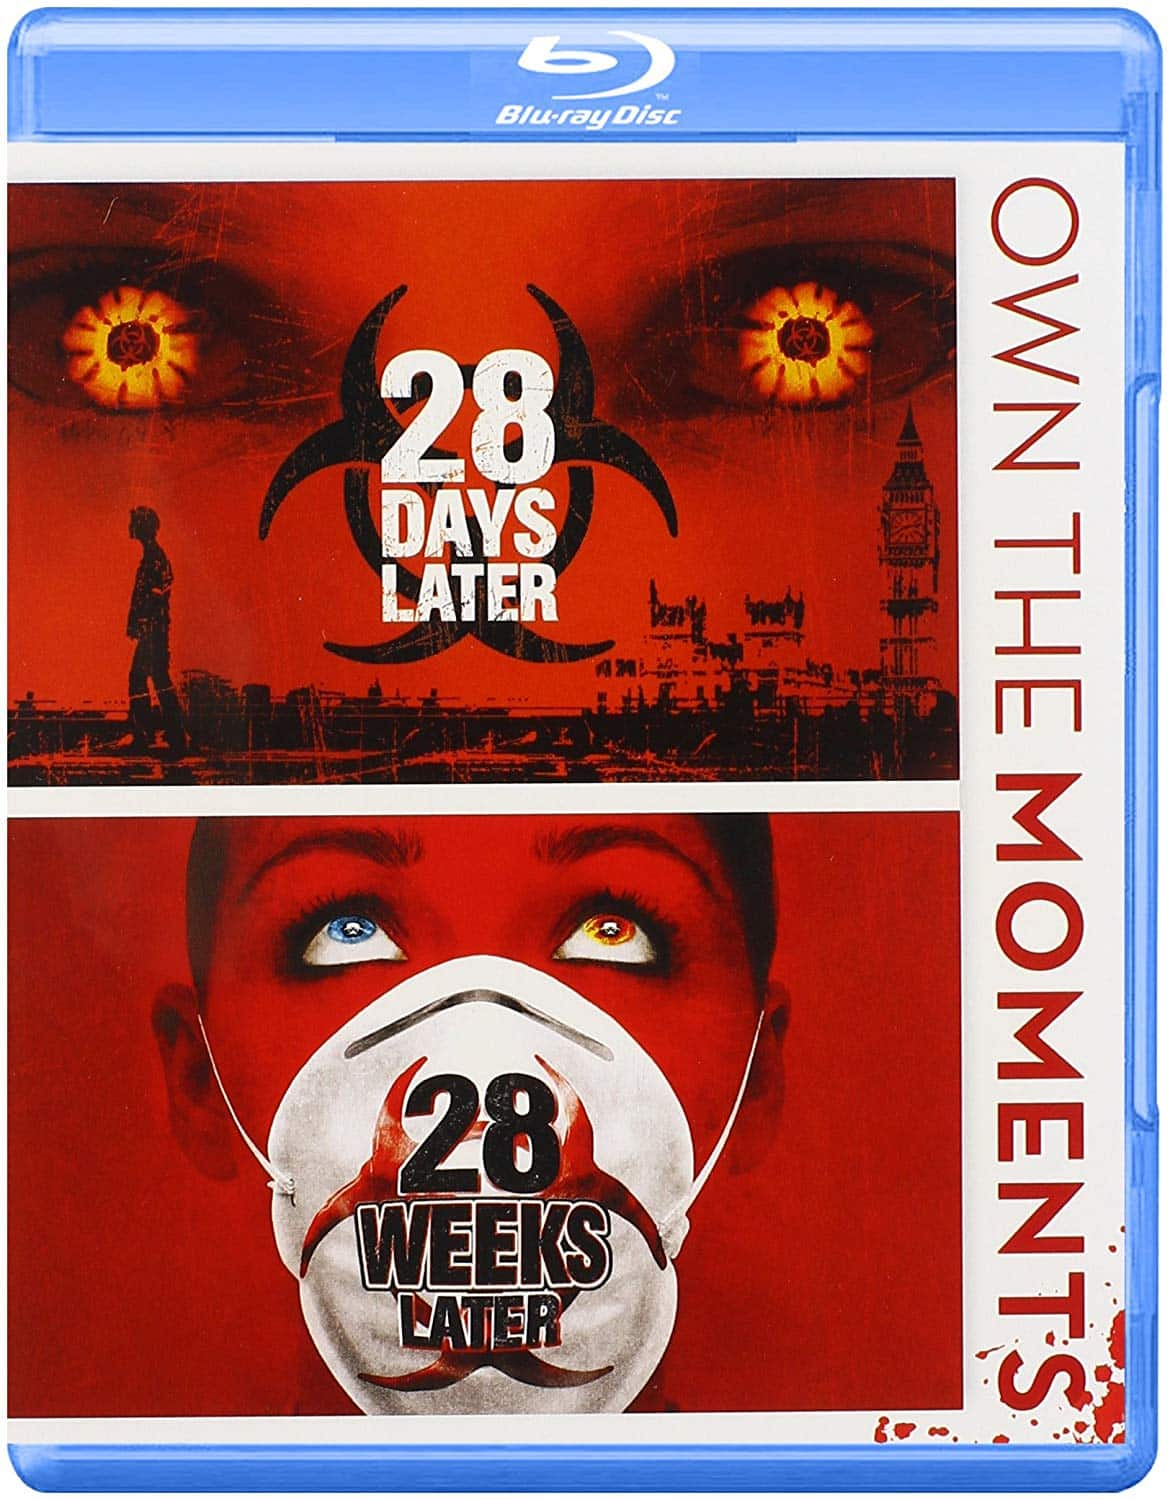 28 Days Later + 28 Weeks Later Double Feature (Blu-ray) $7.99 @ Amazon & Best Buy